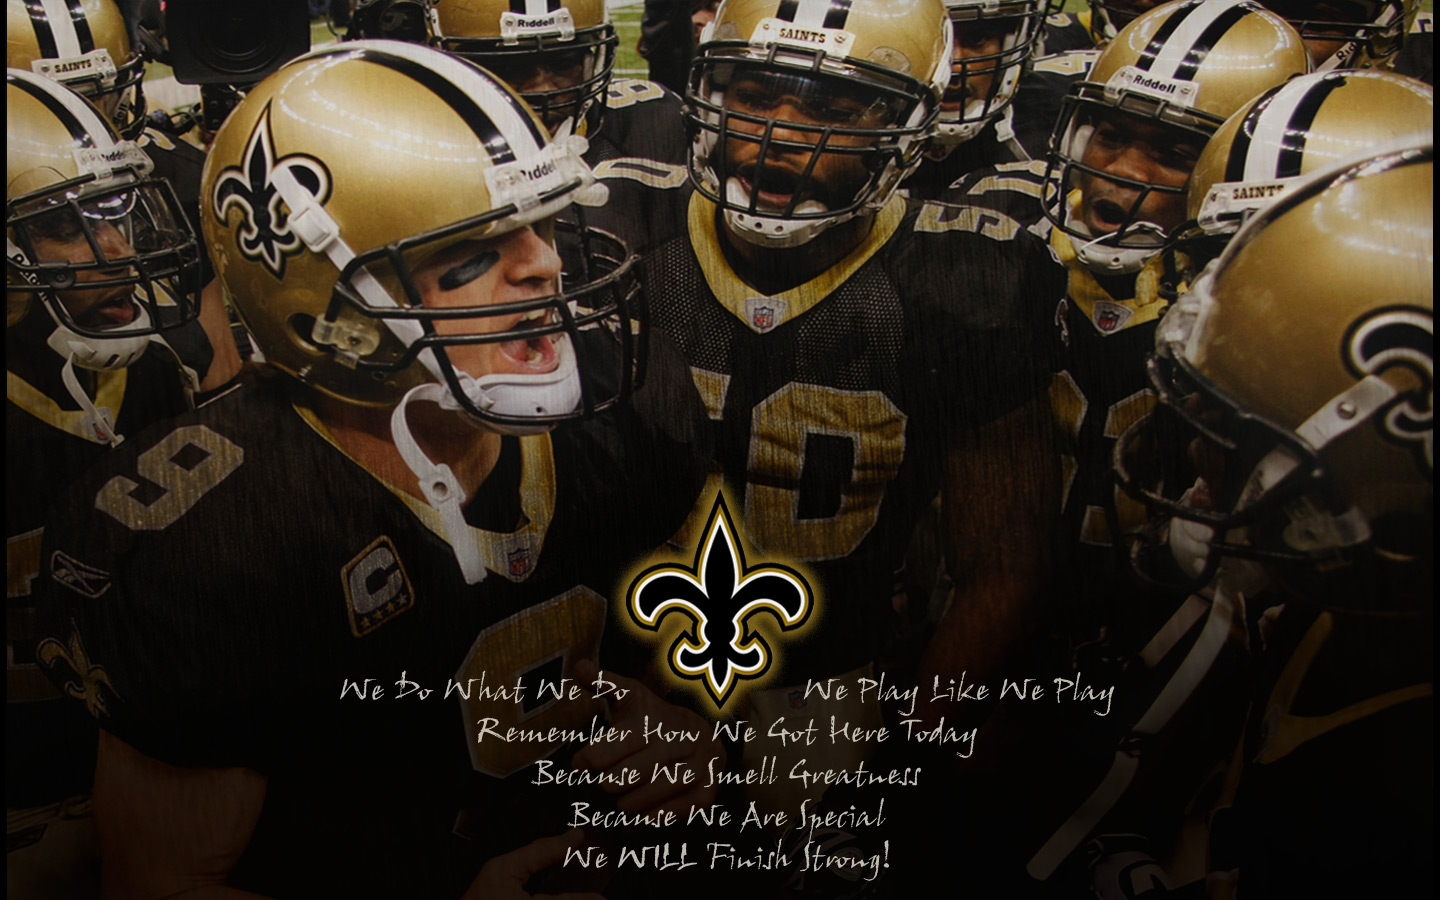 the day New Orleans Saints wallpaper New Orleans Saints wallpapers 1440x900